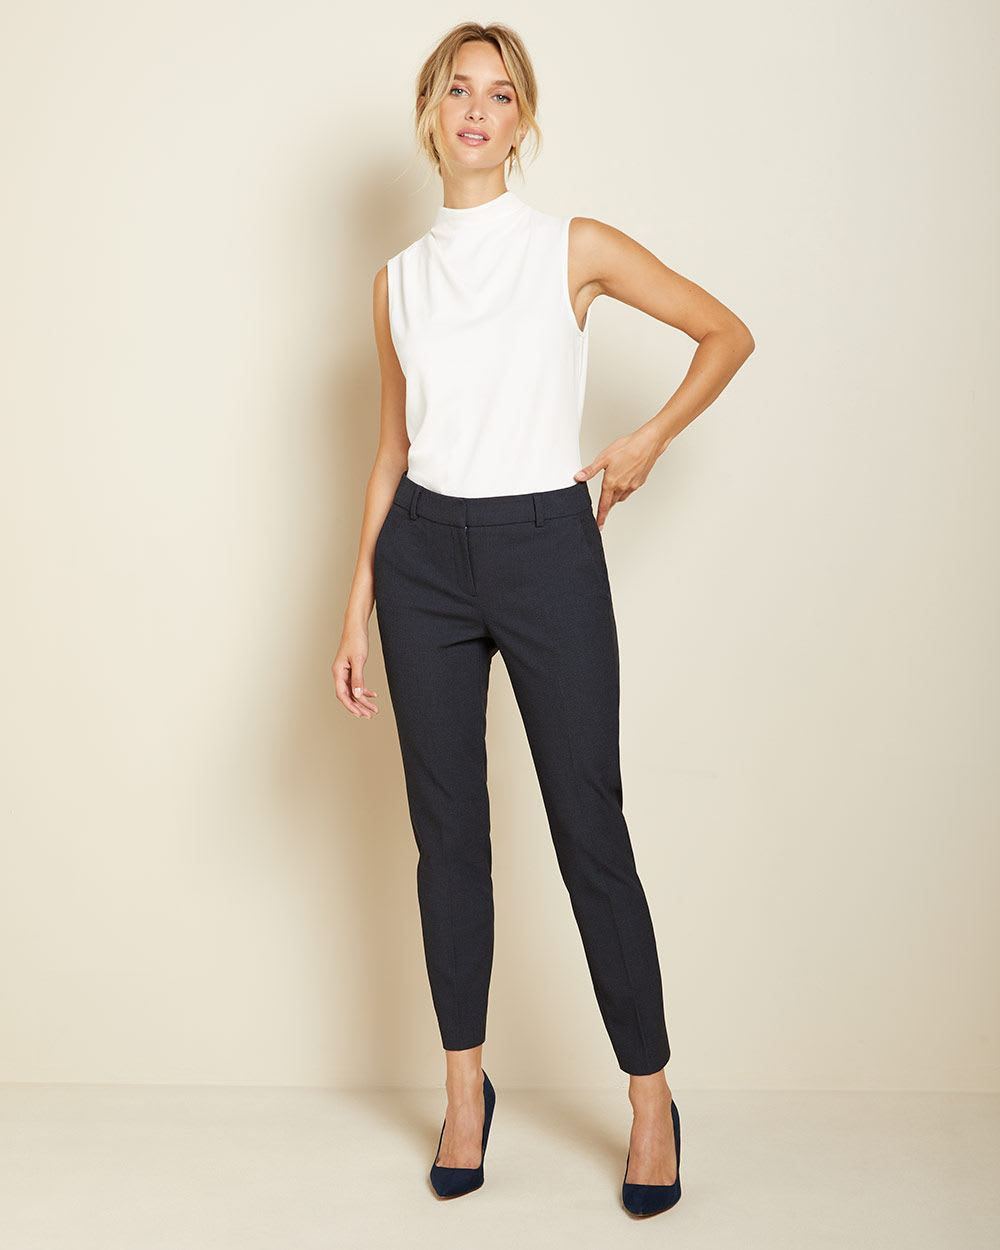 Two-tone Navy Curvy fit Slim Leg Ankle Pant